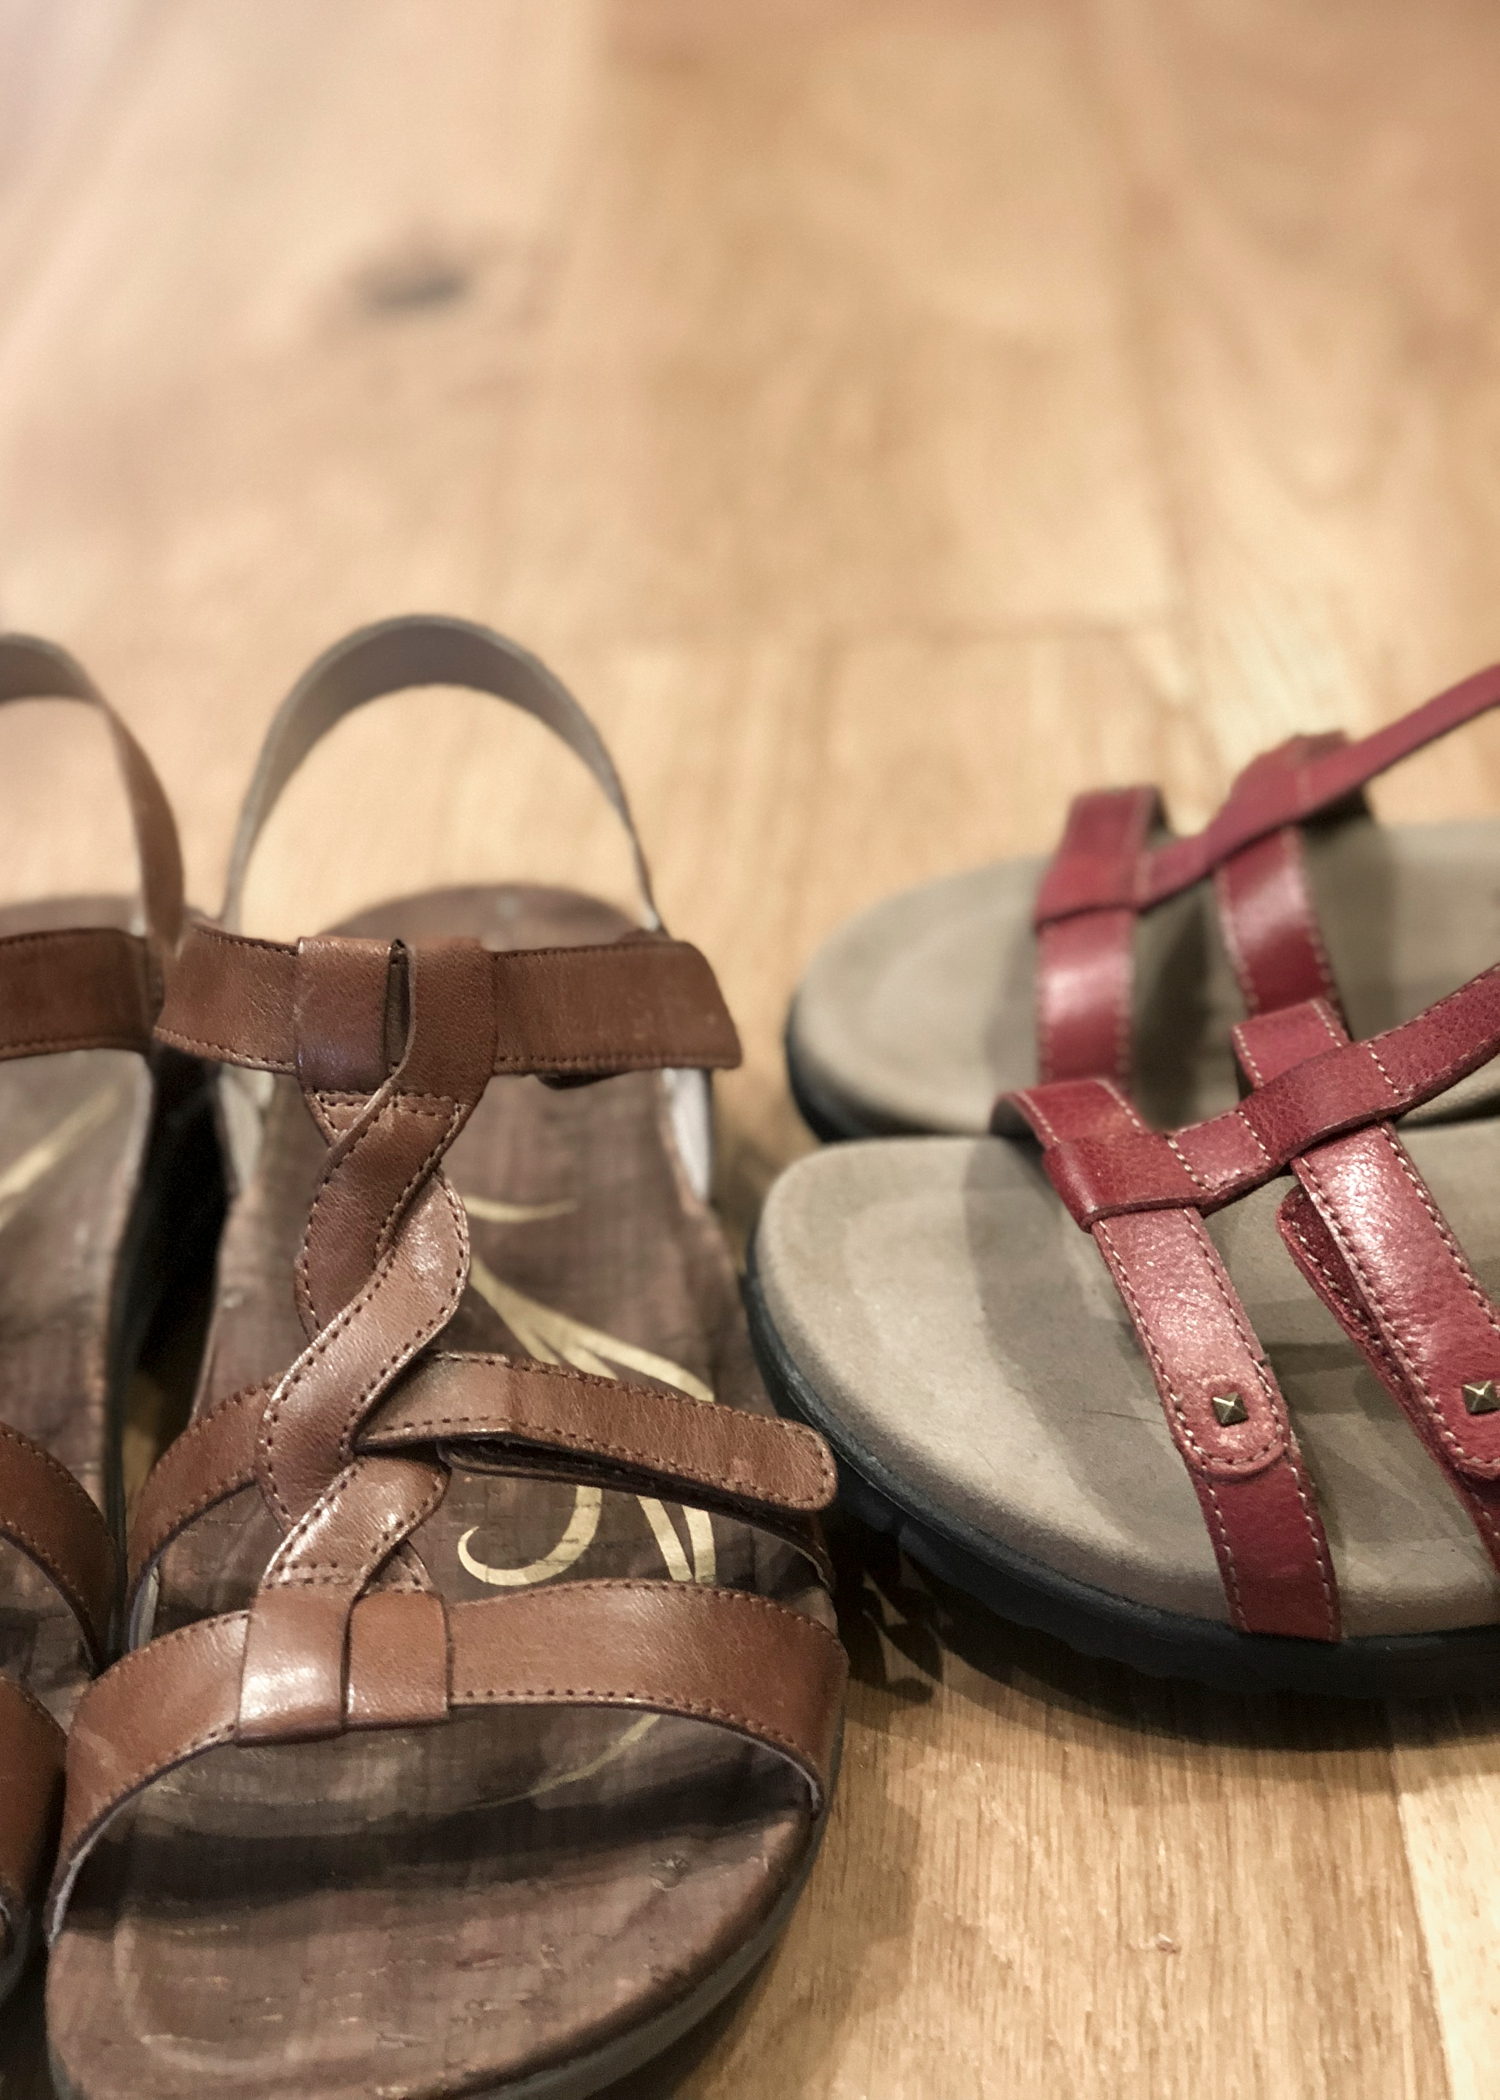 Upgrade your Tevas with this stylish, supportive, and comfortable sandals! They are the perfect addition to your summer outfits for women over 40!